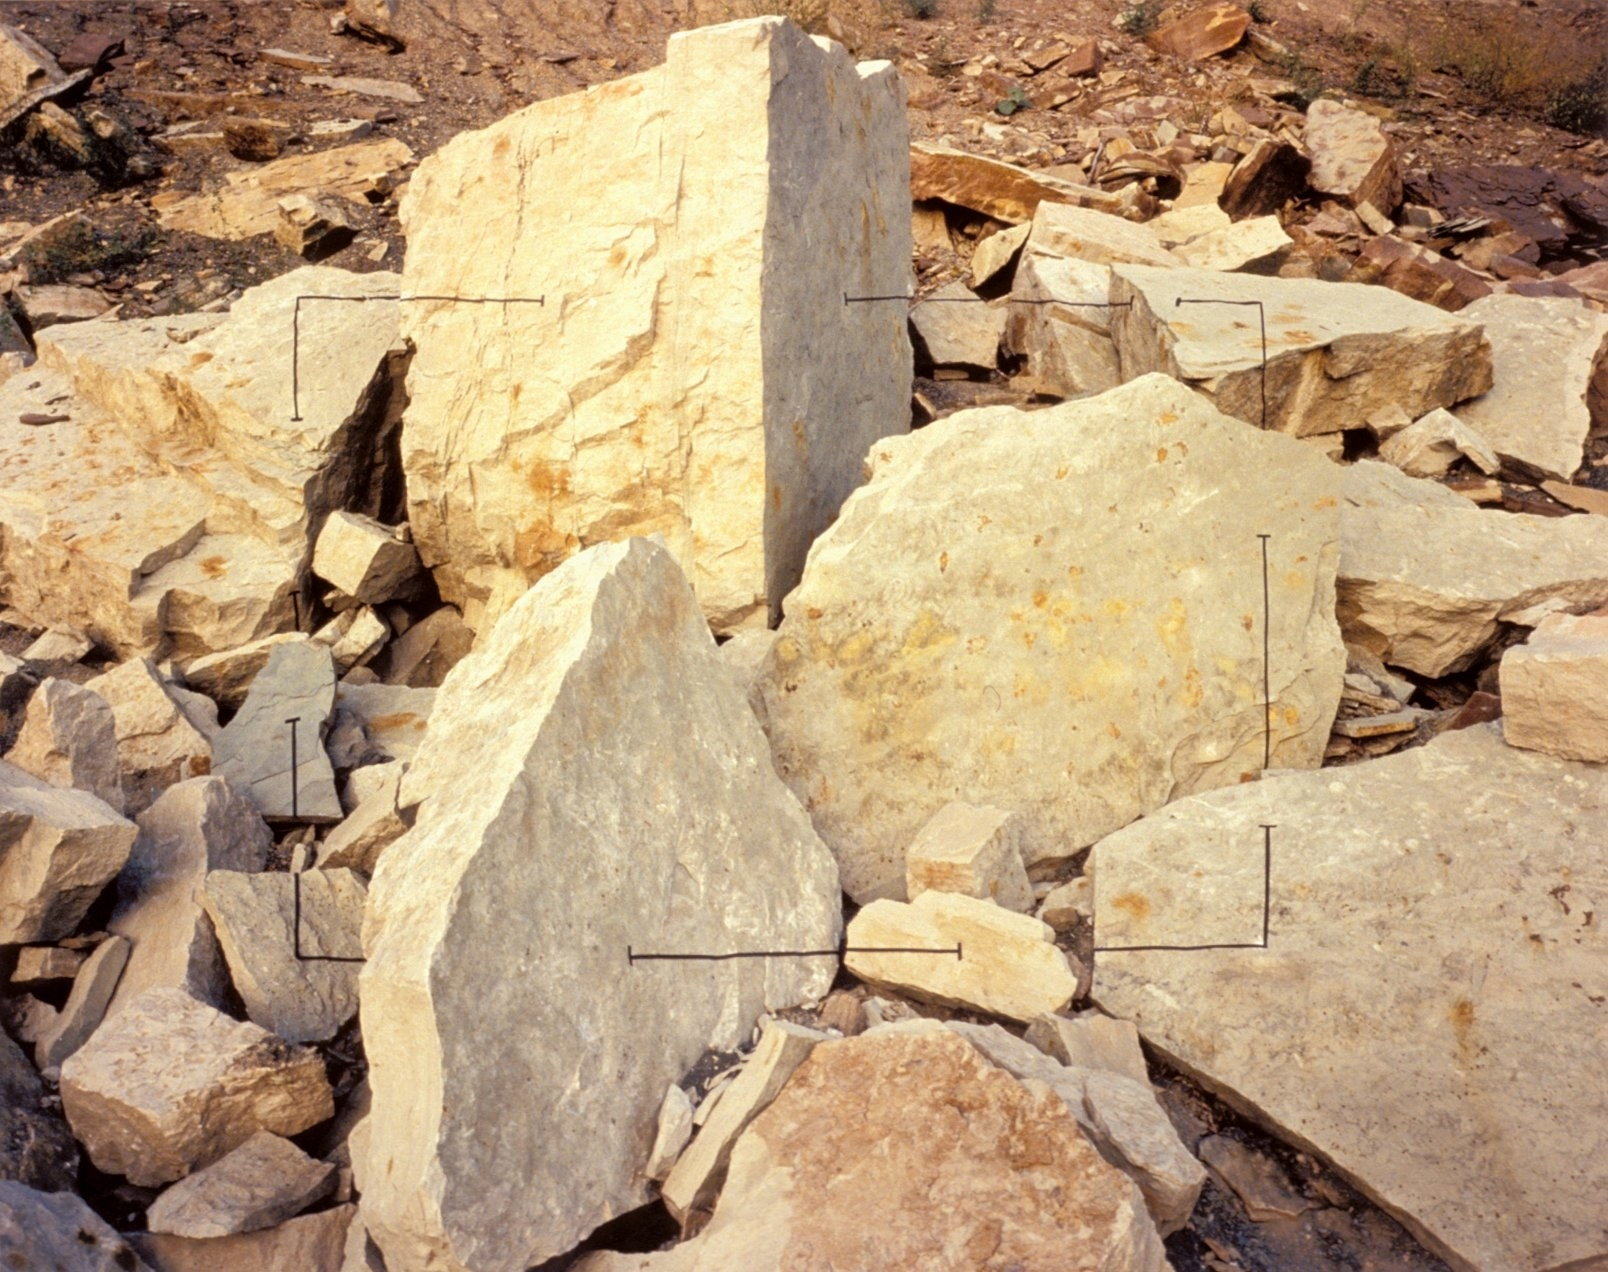 Boulders are seen with a square frame outlined